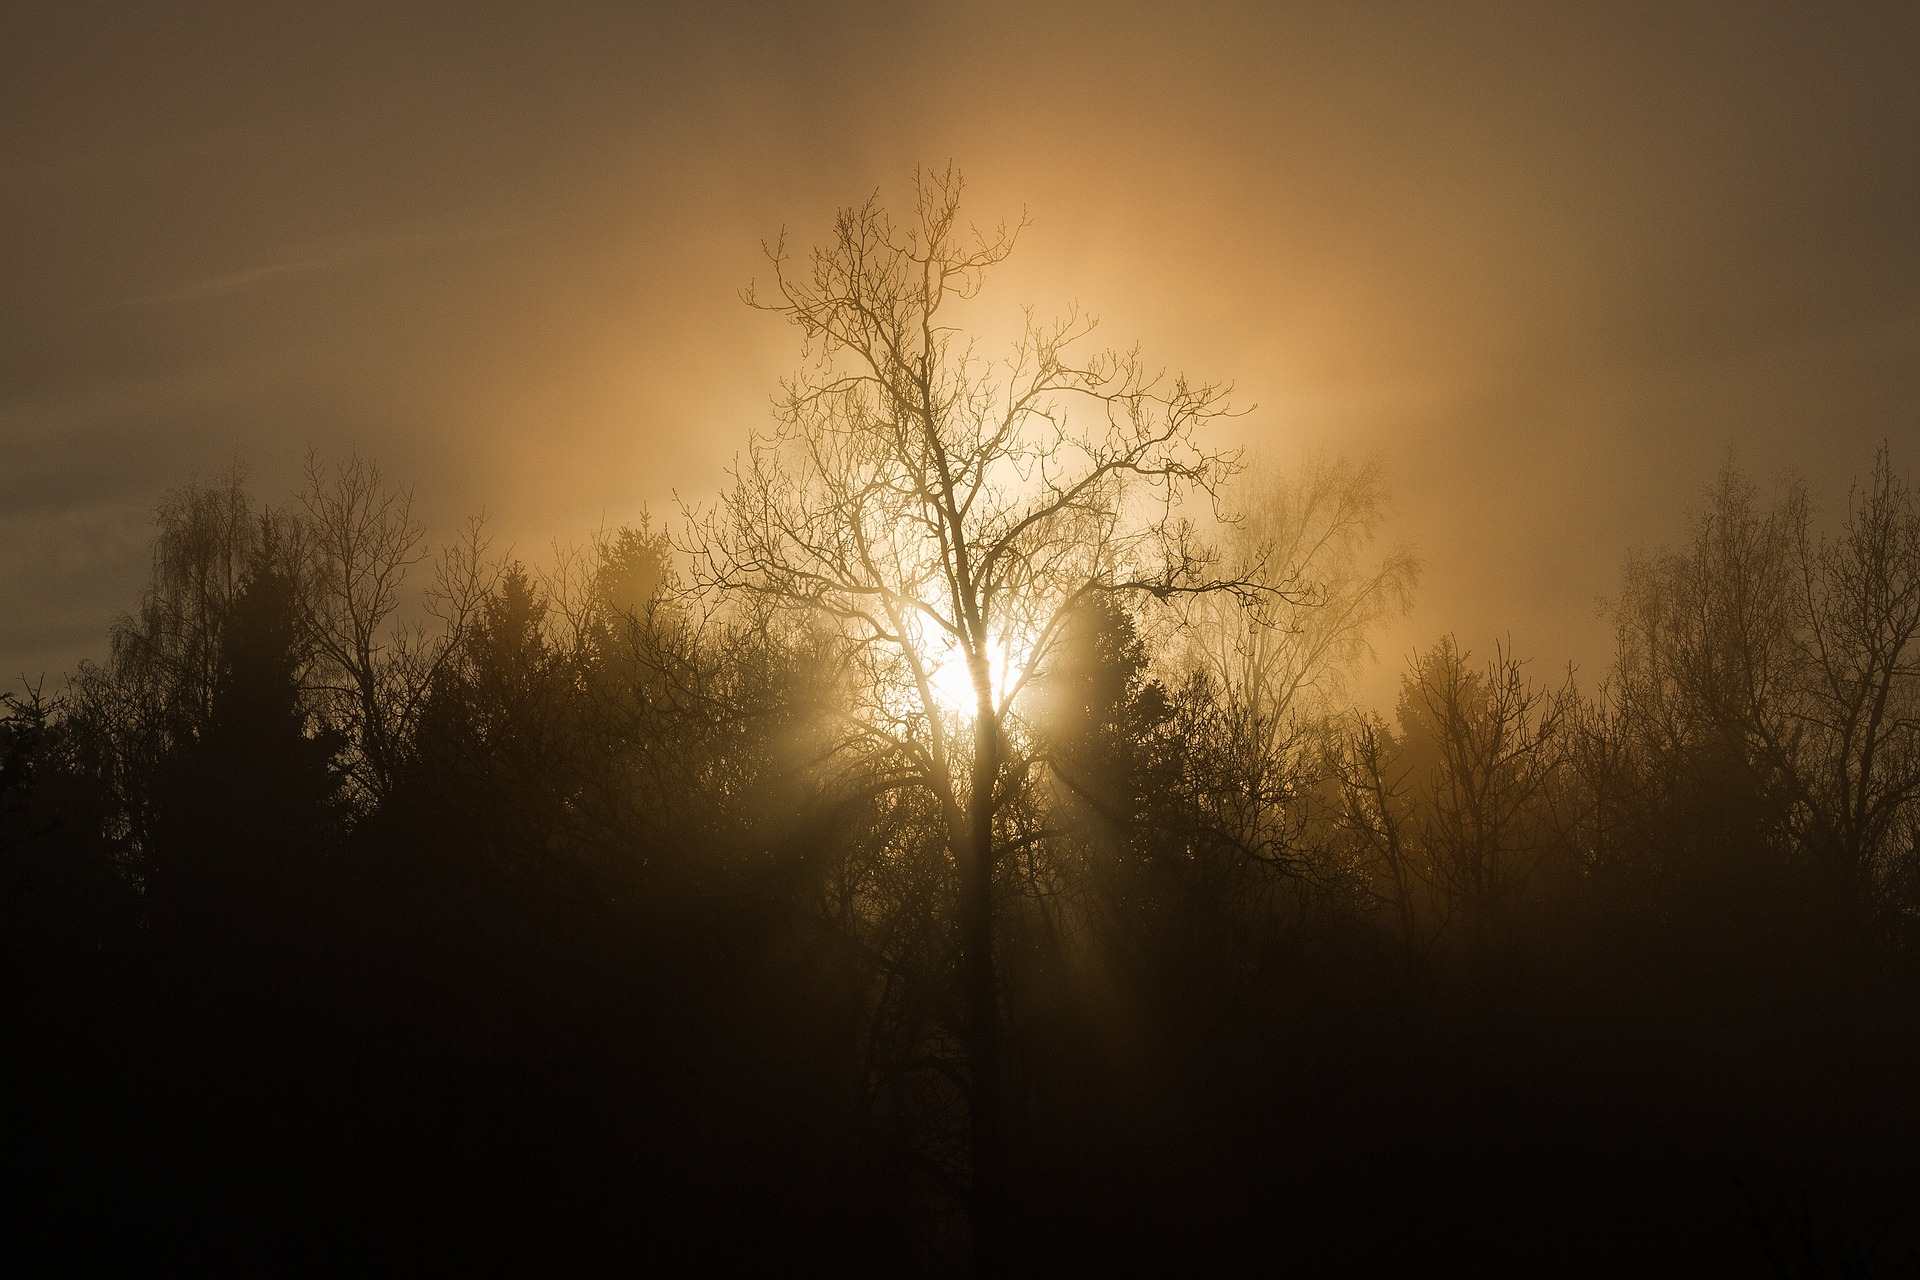 The Sun Shining on a Cool Misty Morning  #poetrythursday